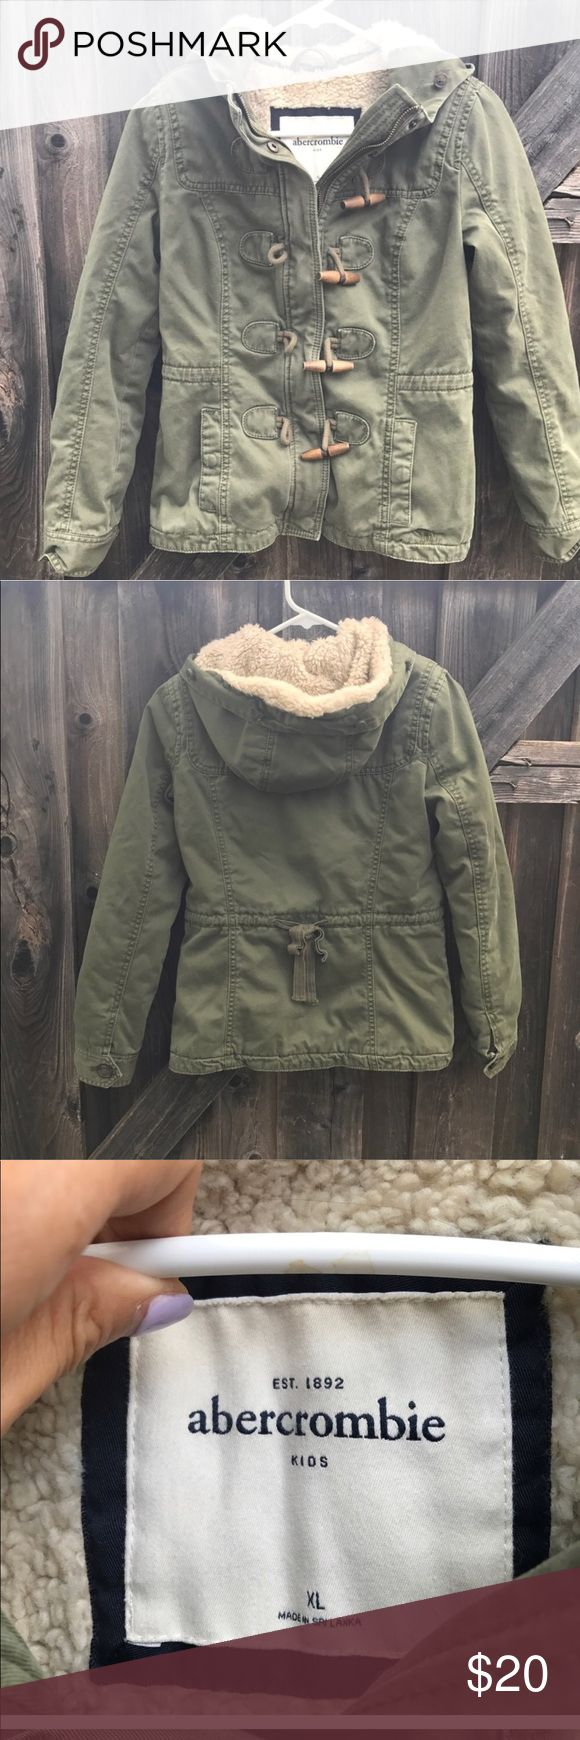 Abercrombie girls jacket Abercrombie Kids army green thick winter jacket size Xl  No stains or rips  Only thing missing is the fur on the hood  Length 23 inches  Armpit to armpit 18 inches  Shoulder to shoulder 14 inches  Length of arm from shoulder 26 Jackets & Coats